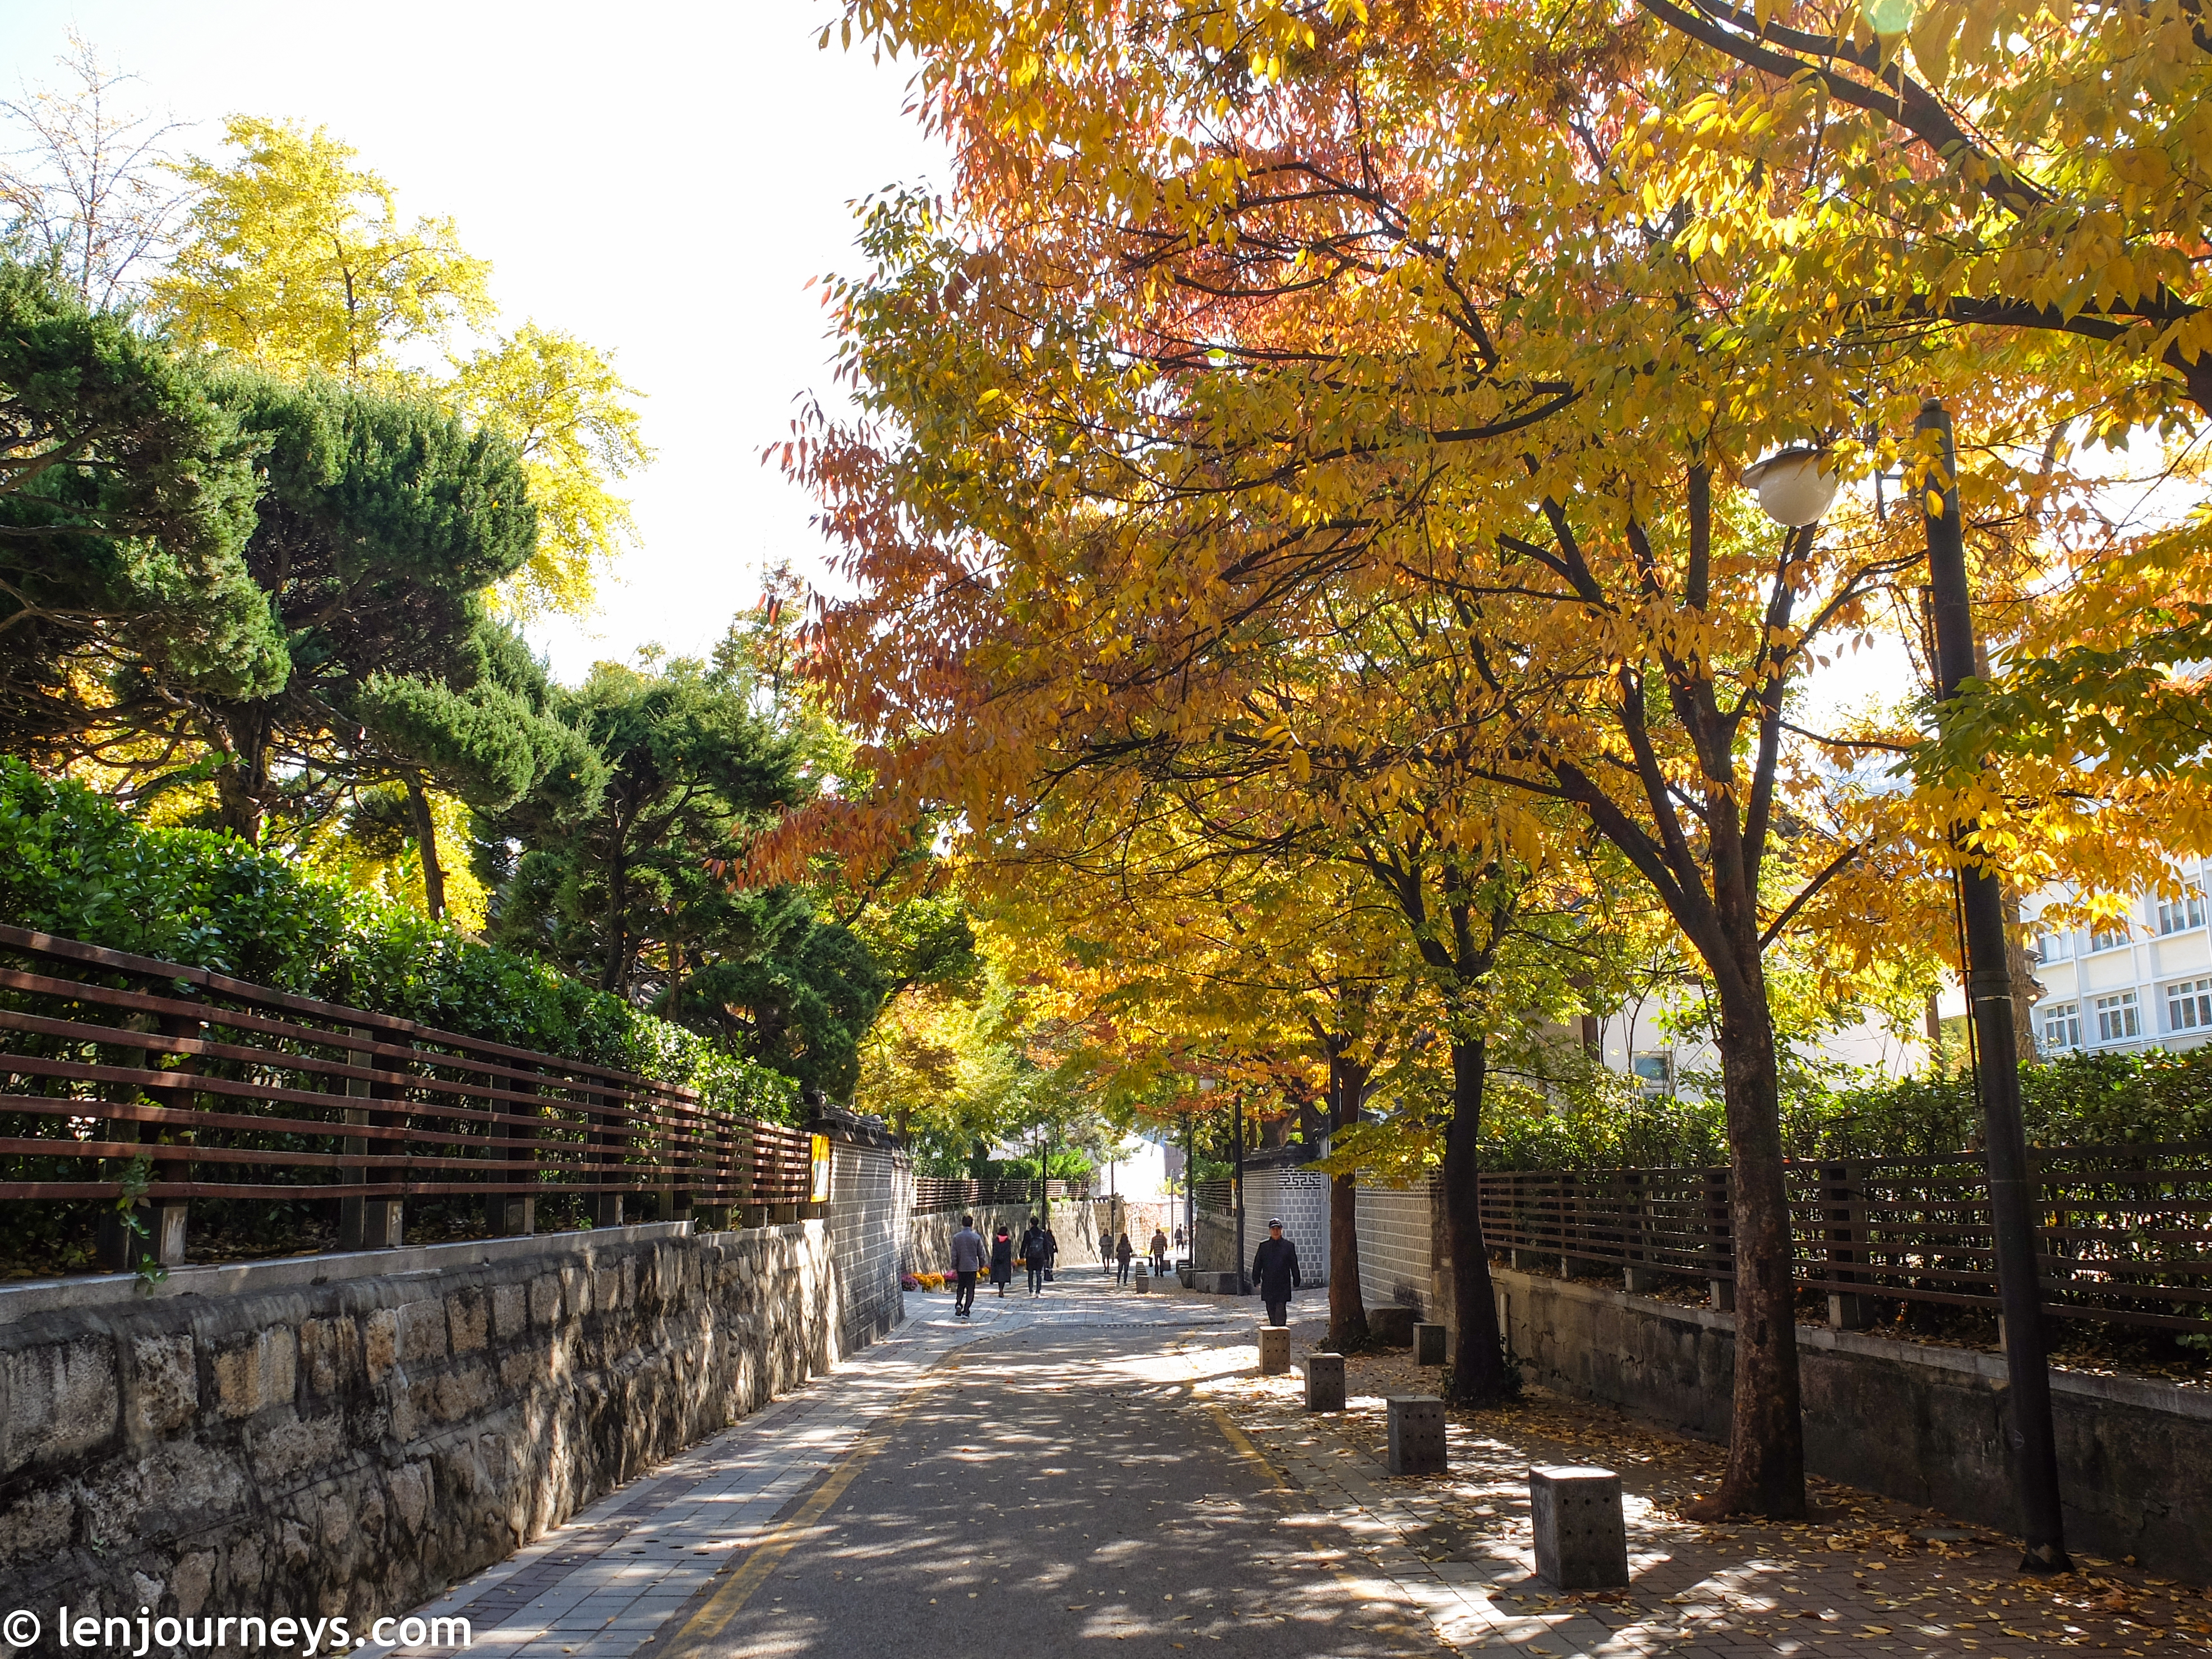 The street of Bukchon Hanok Village